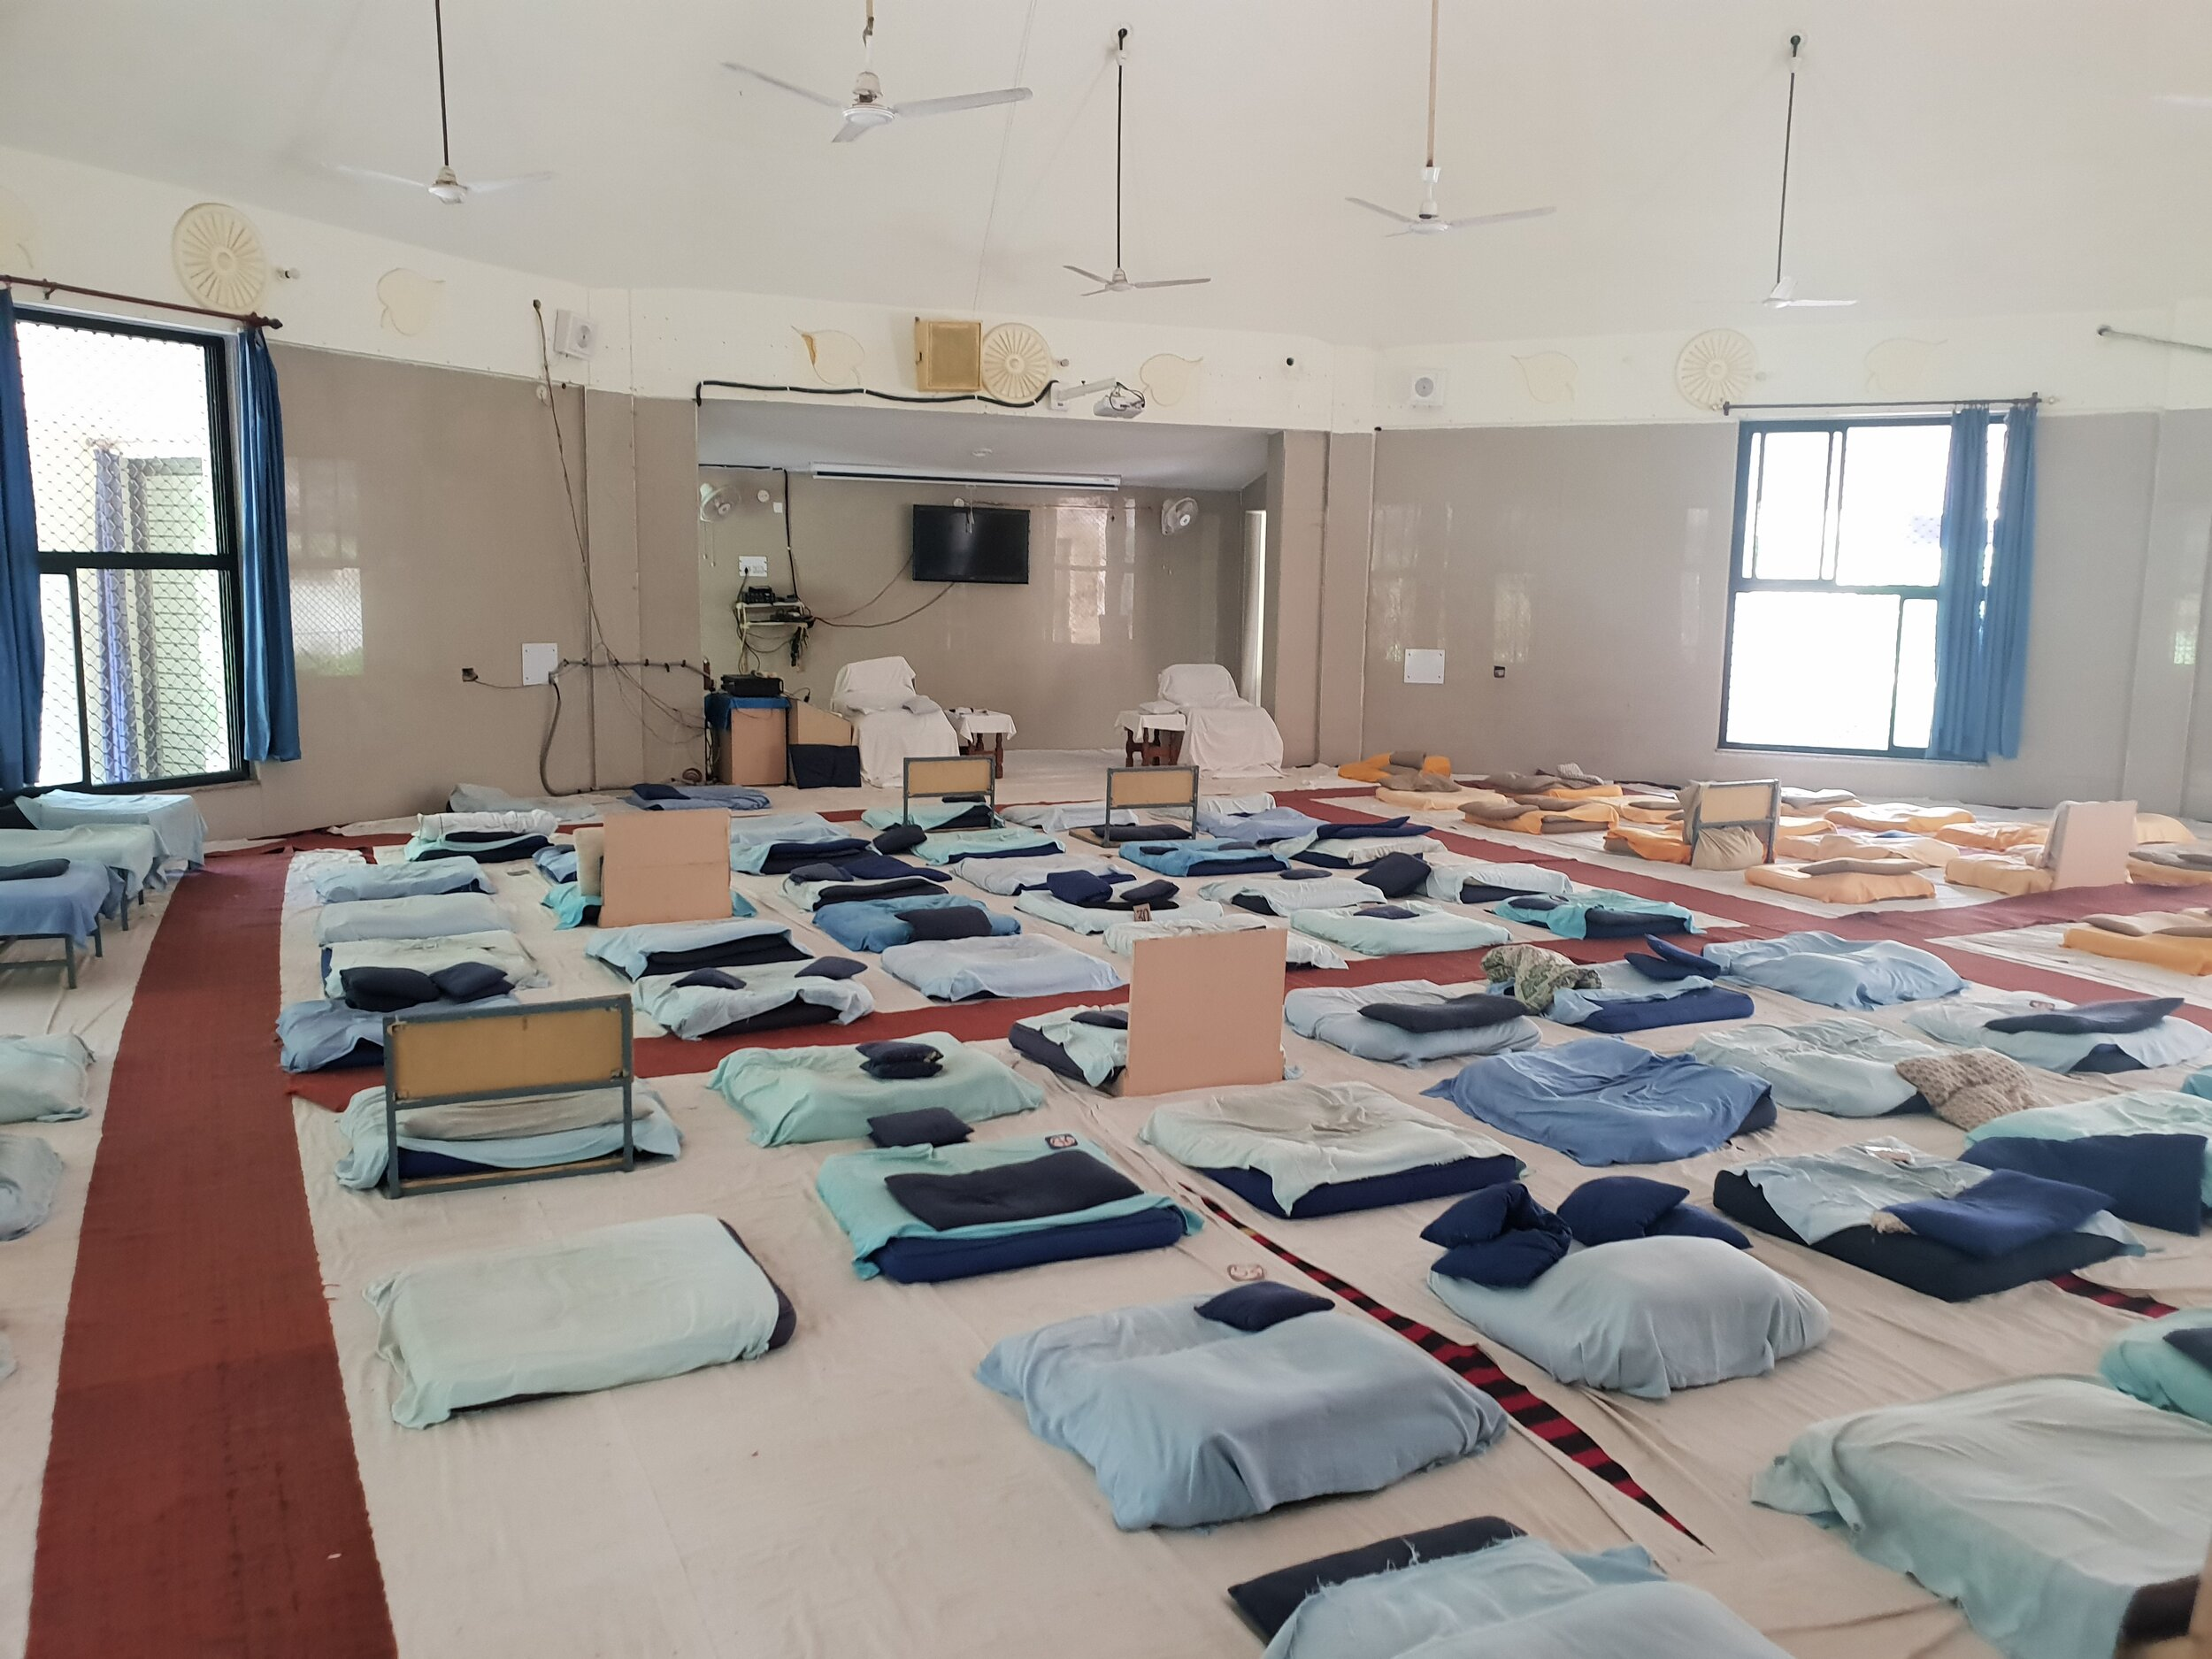 I spent around 100 hours sat in this sweaty room over the course of the retreat.